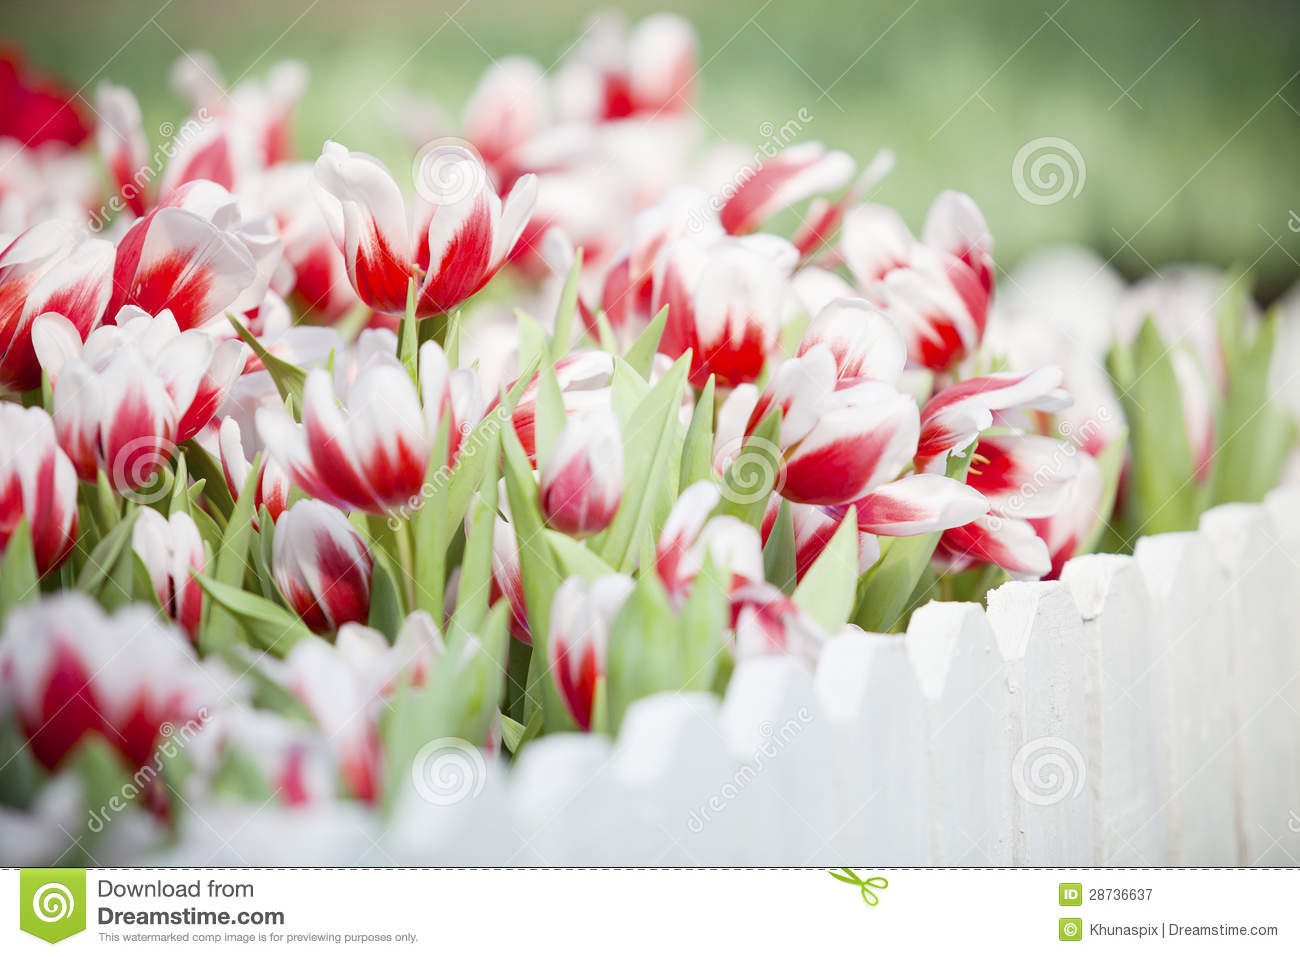 Group Of White And Red Tulip Flowers In The Garden Stock Image